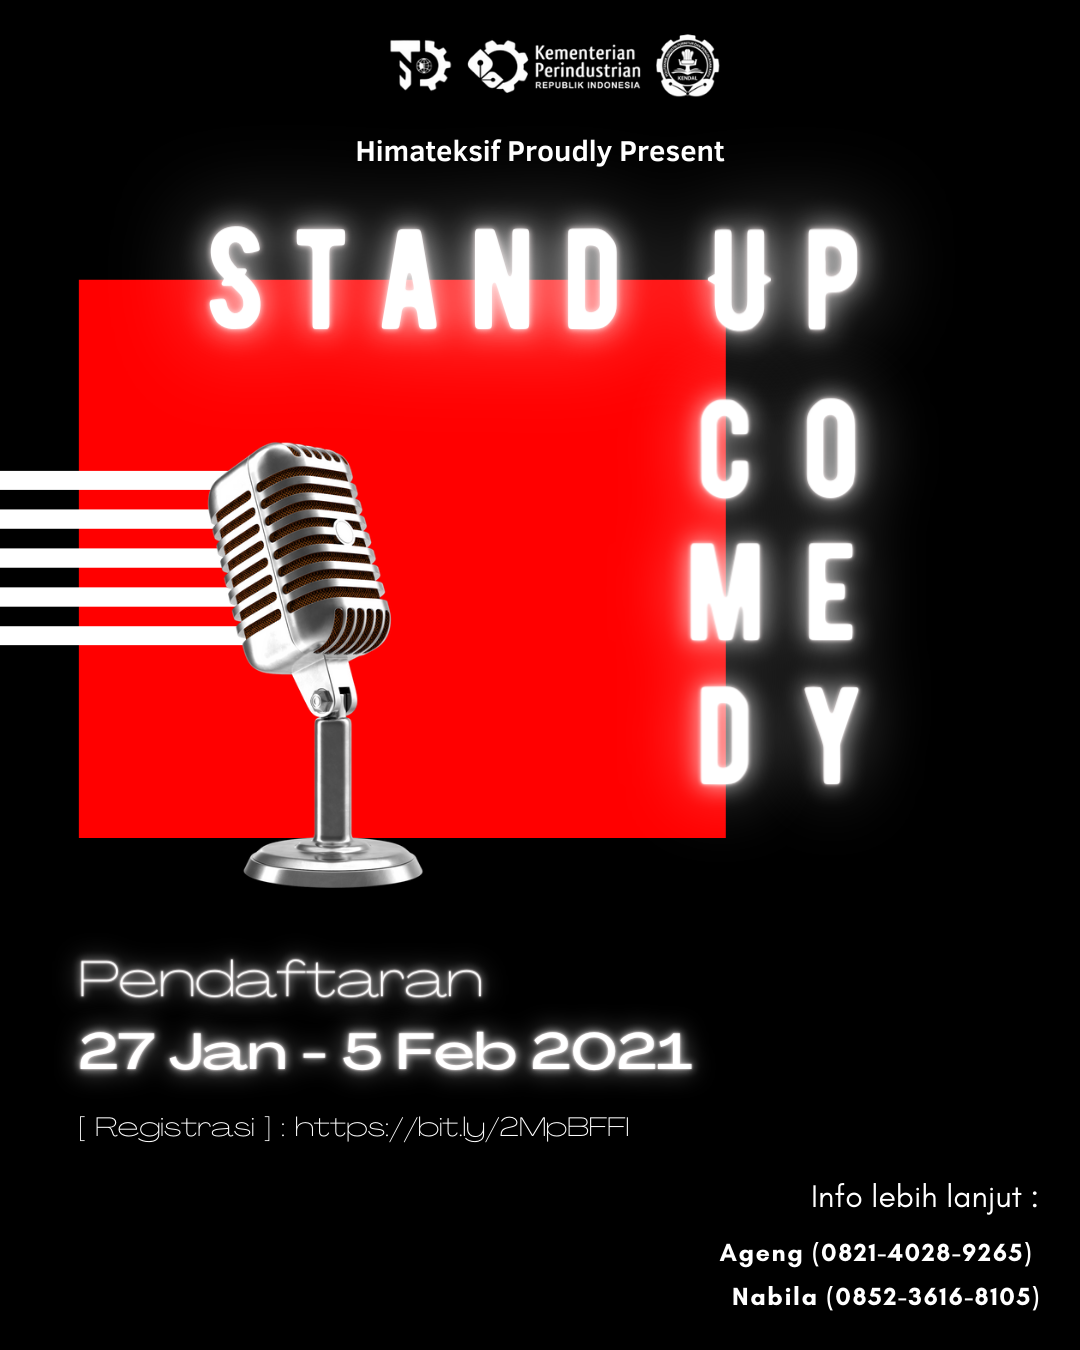 2. Stand Up Comedy (Slide 2)